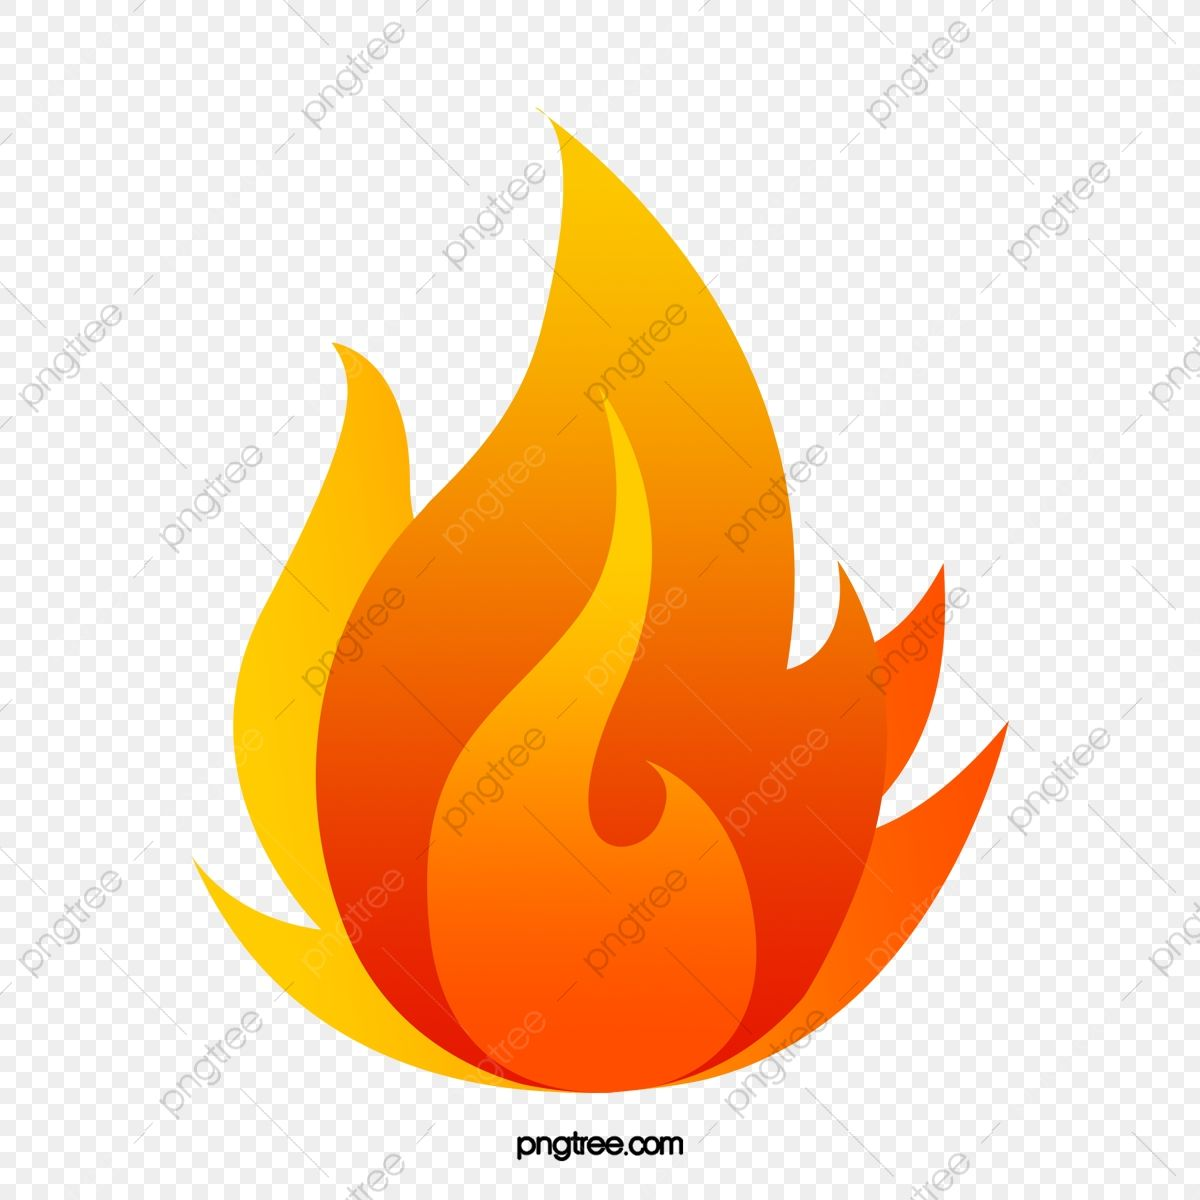 Flaming Fire Fire Clipart Red Flame Vector Fire Png Transparent Clipart Image And Psd File For Free Download Photo Background Images Photo Backgrounds Clipart Images